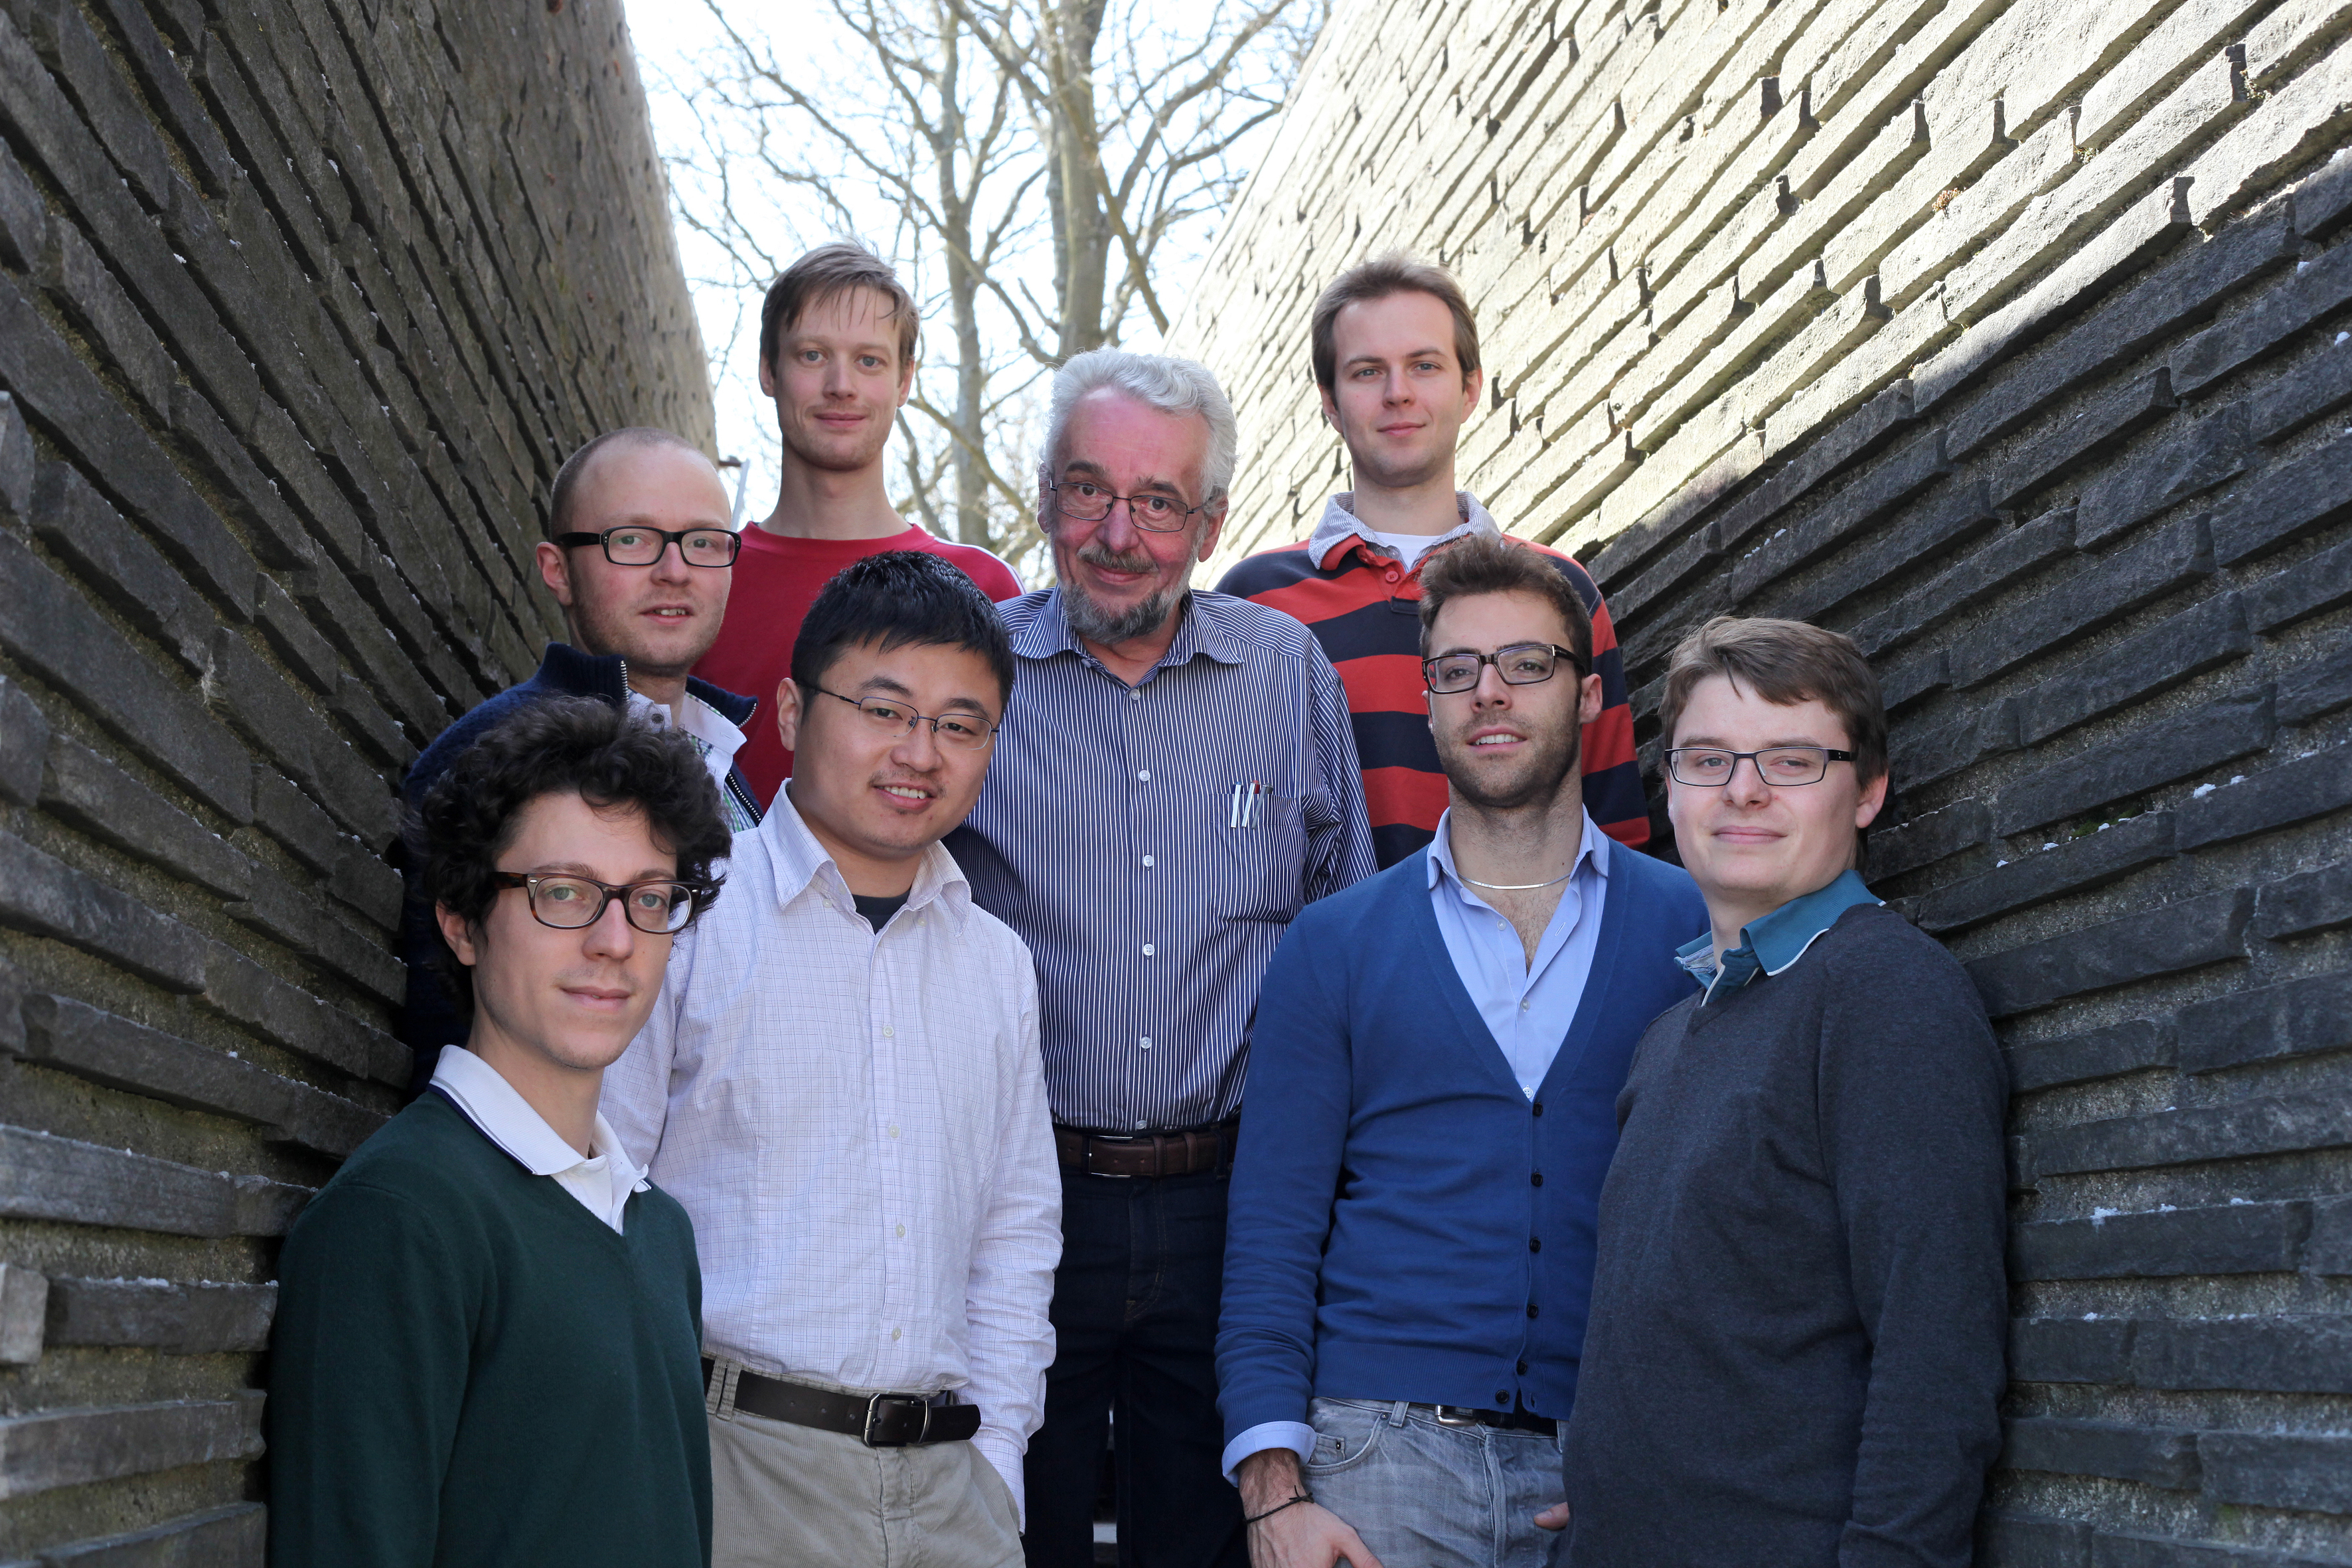 Members of the Silicon Microtechnology group spring 2013